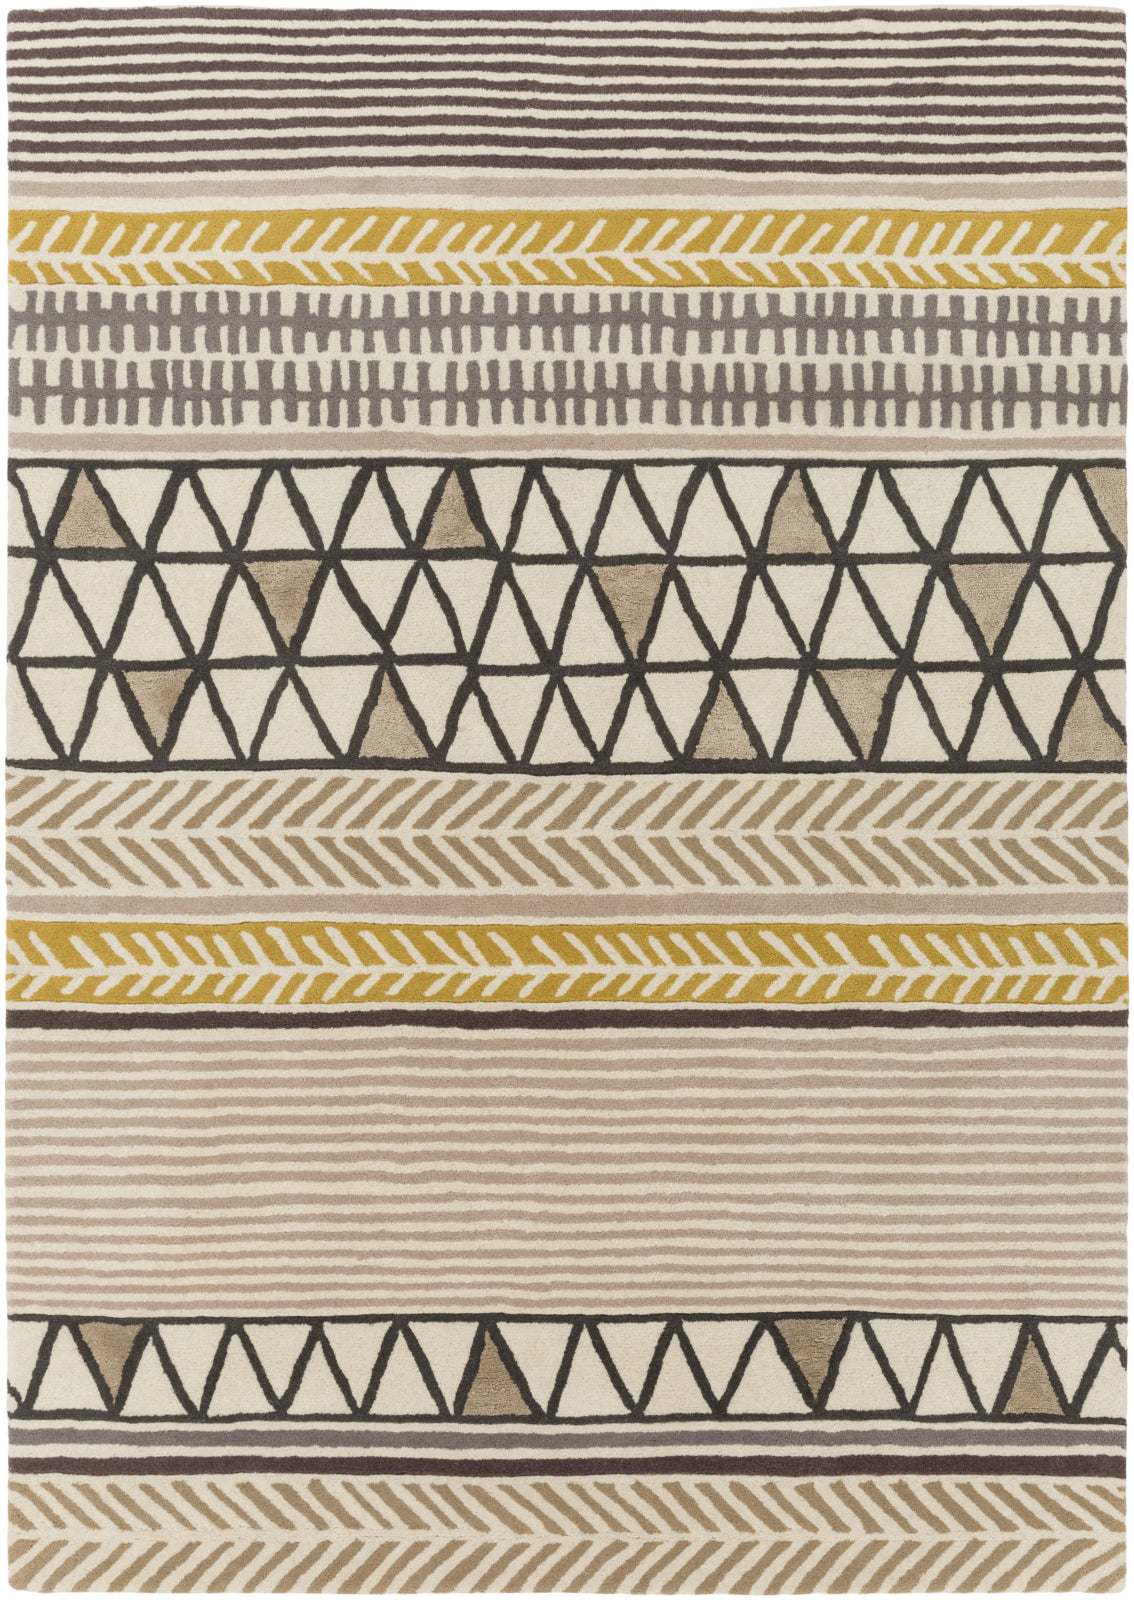 Surya SCI-34 Area Rug by Scion main image